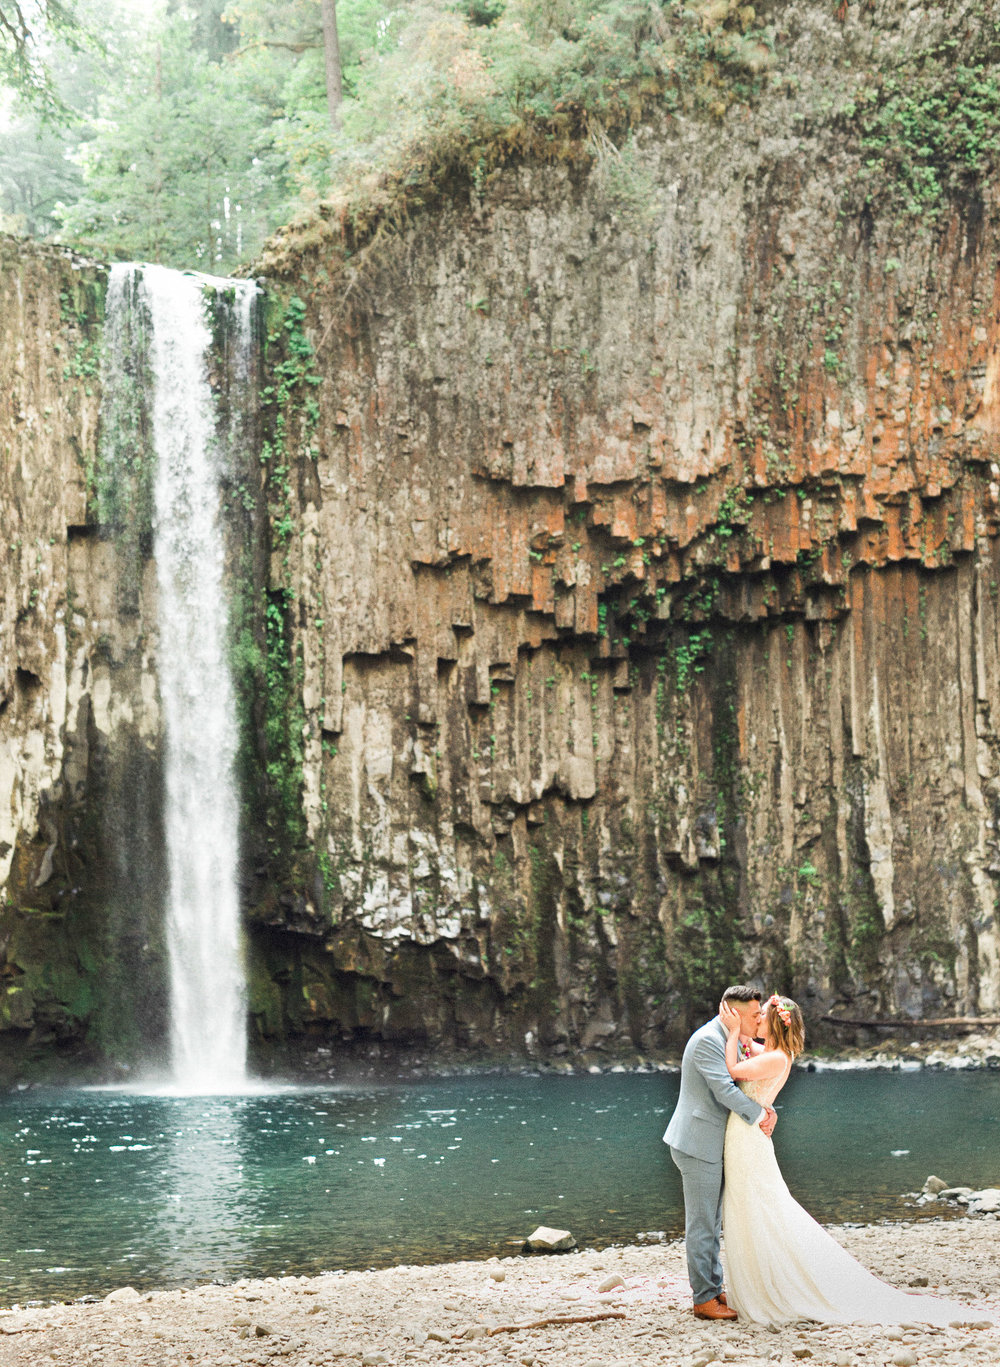 abiqua_falls_elopement_wedding_oregon_photographer_videographer_079.jpg